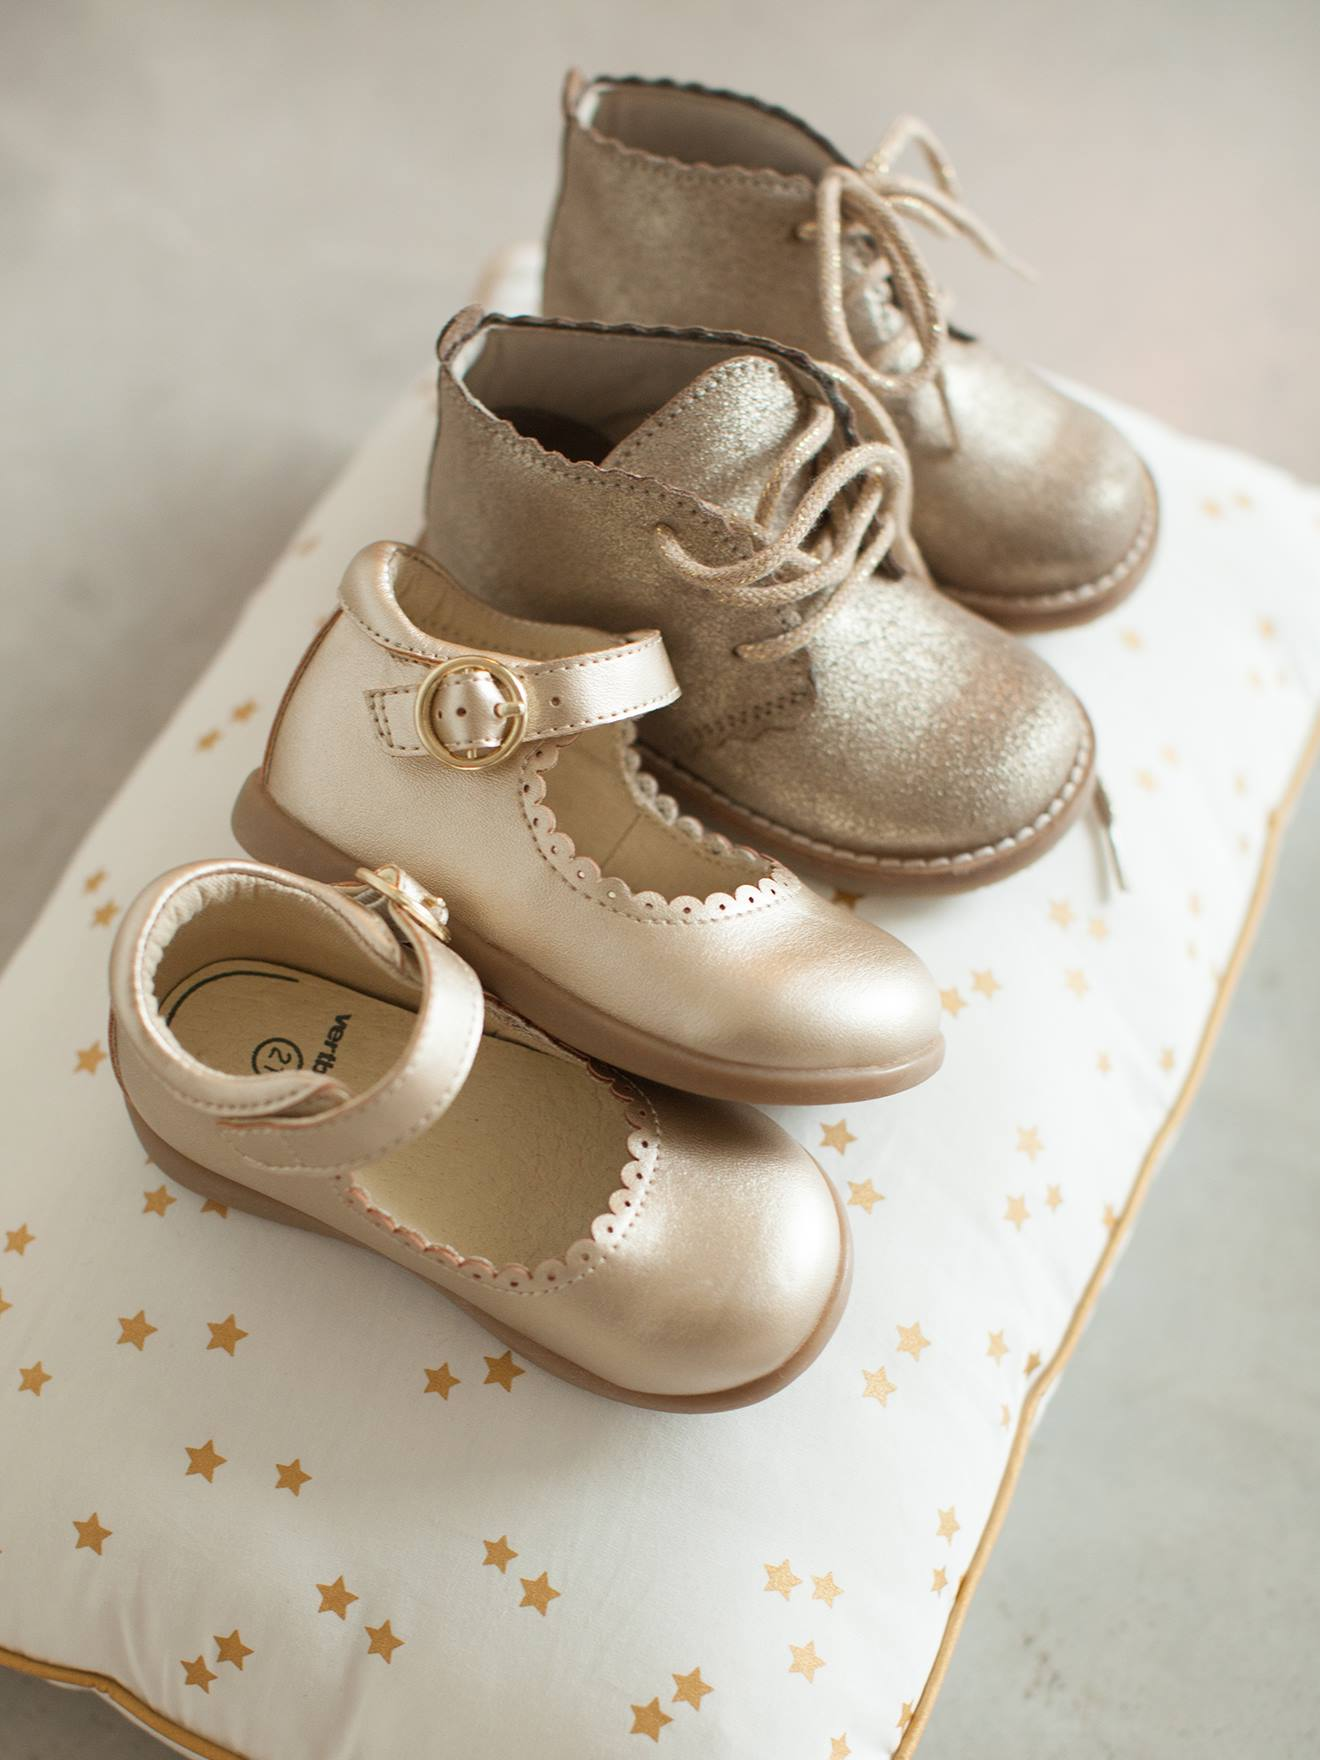 Leather Pram Boots with Laces, for Baby